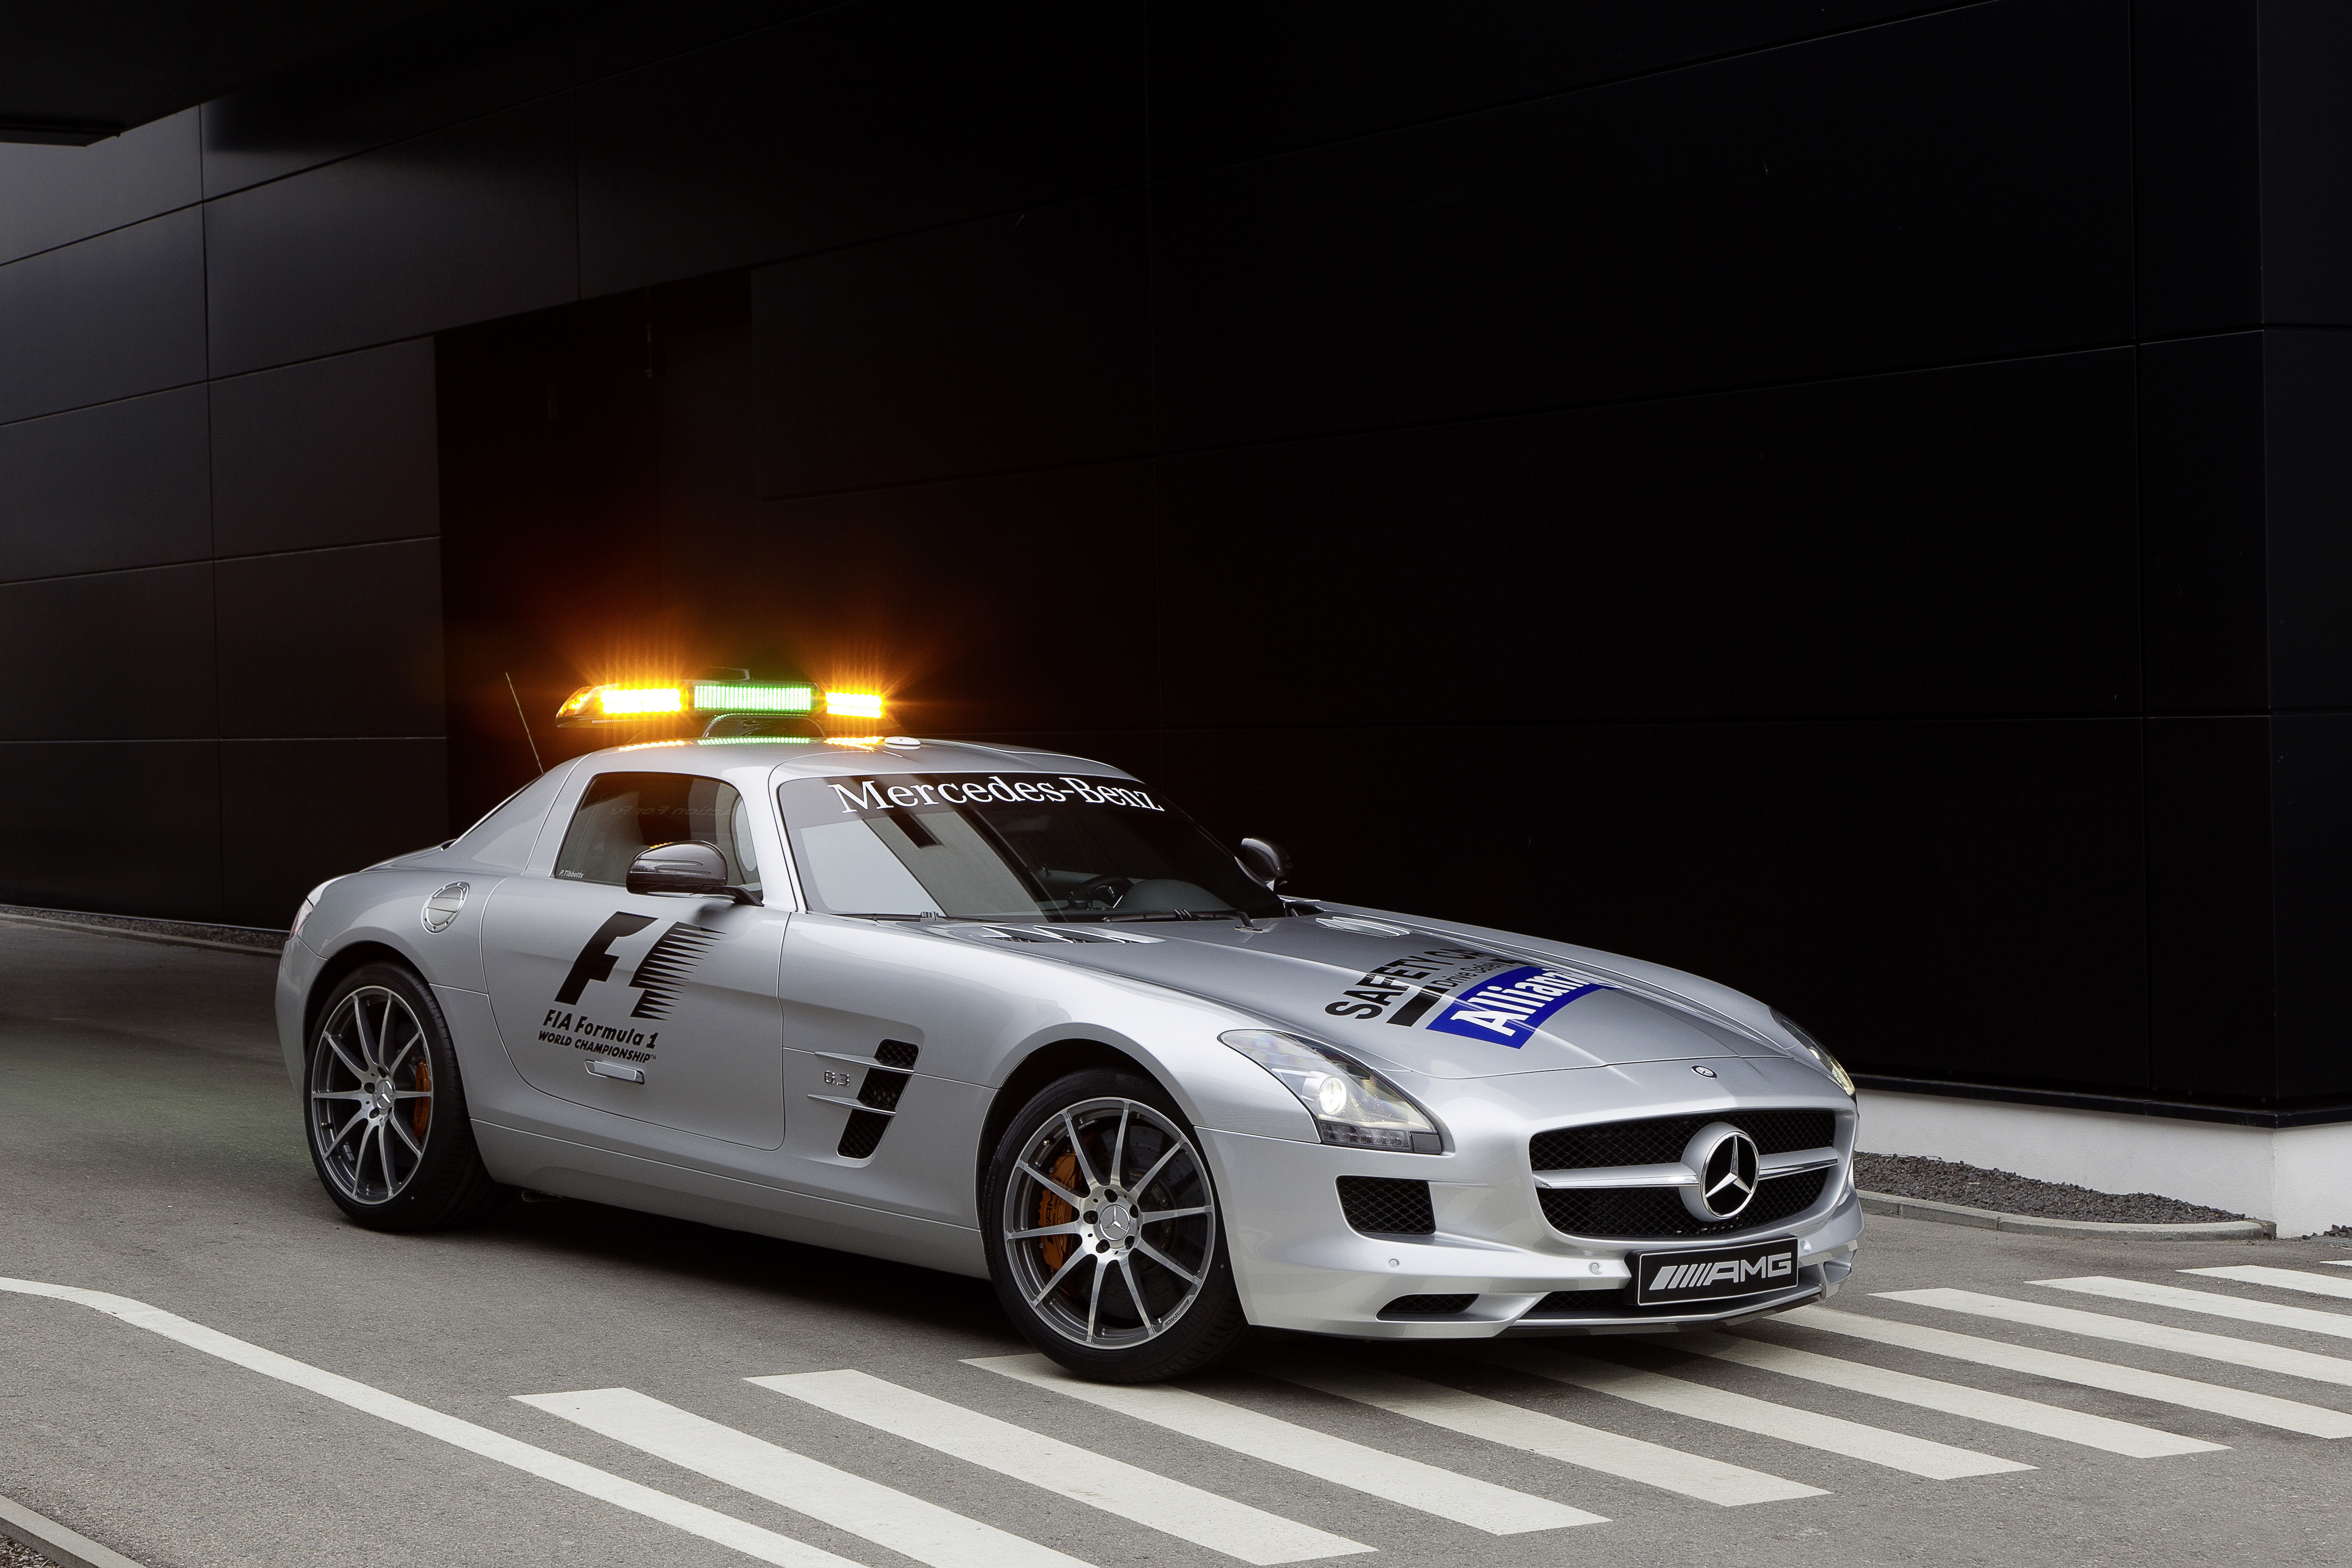 Mercedes amg official f1 safety car medical car photo for Mercedes benz f1